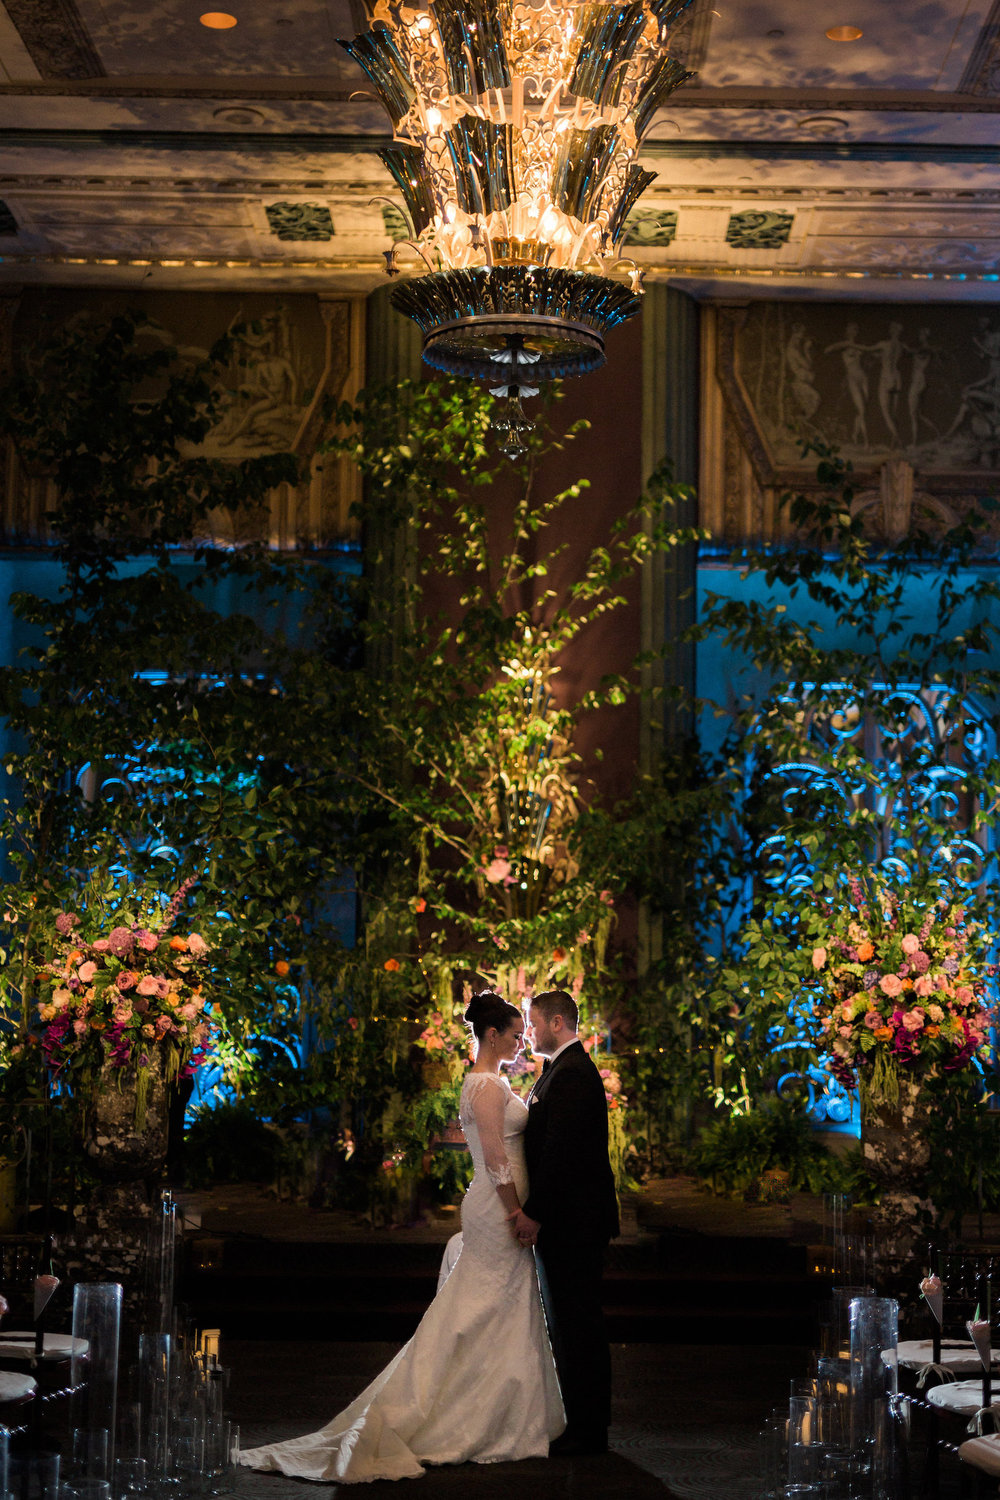 Midsummer Night's Dream Enchanted Forest inspired wedding with garden details at the  Hilton Netherland Plaza  in Cincinnati, OH. Beautiful images by    S  tyle and Story  Creative. Floral & Event Design by Cincinnati wedding florist  Courtenay Lambert Florals .Tree backdrop for ceremony with gorgeous floral designs on each side. Designs include  Rentals from  Primetime Party Rental  and  All Occasions Event Rental , Event Design and Floral Designs by  Courtney Lambert Florals , linens by  Wildflower Linen , lighting by Goodwin Lighting, and draping and bistro lights by  Fitz the Occasion .